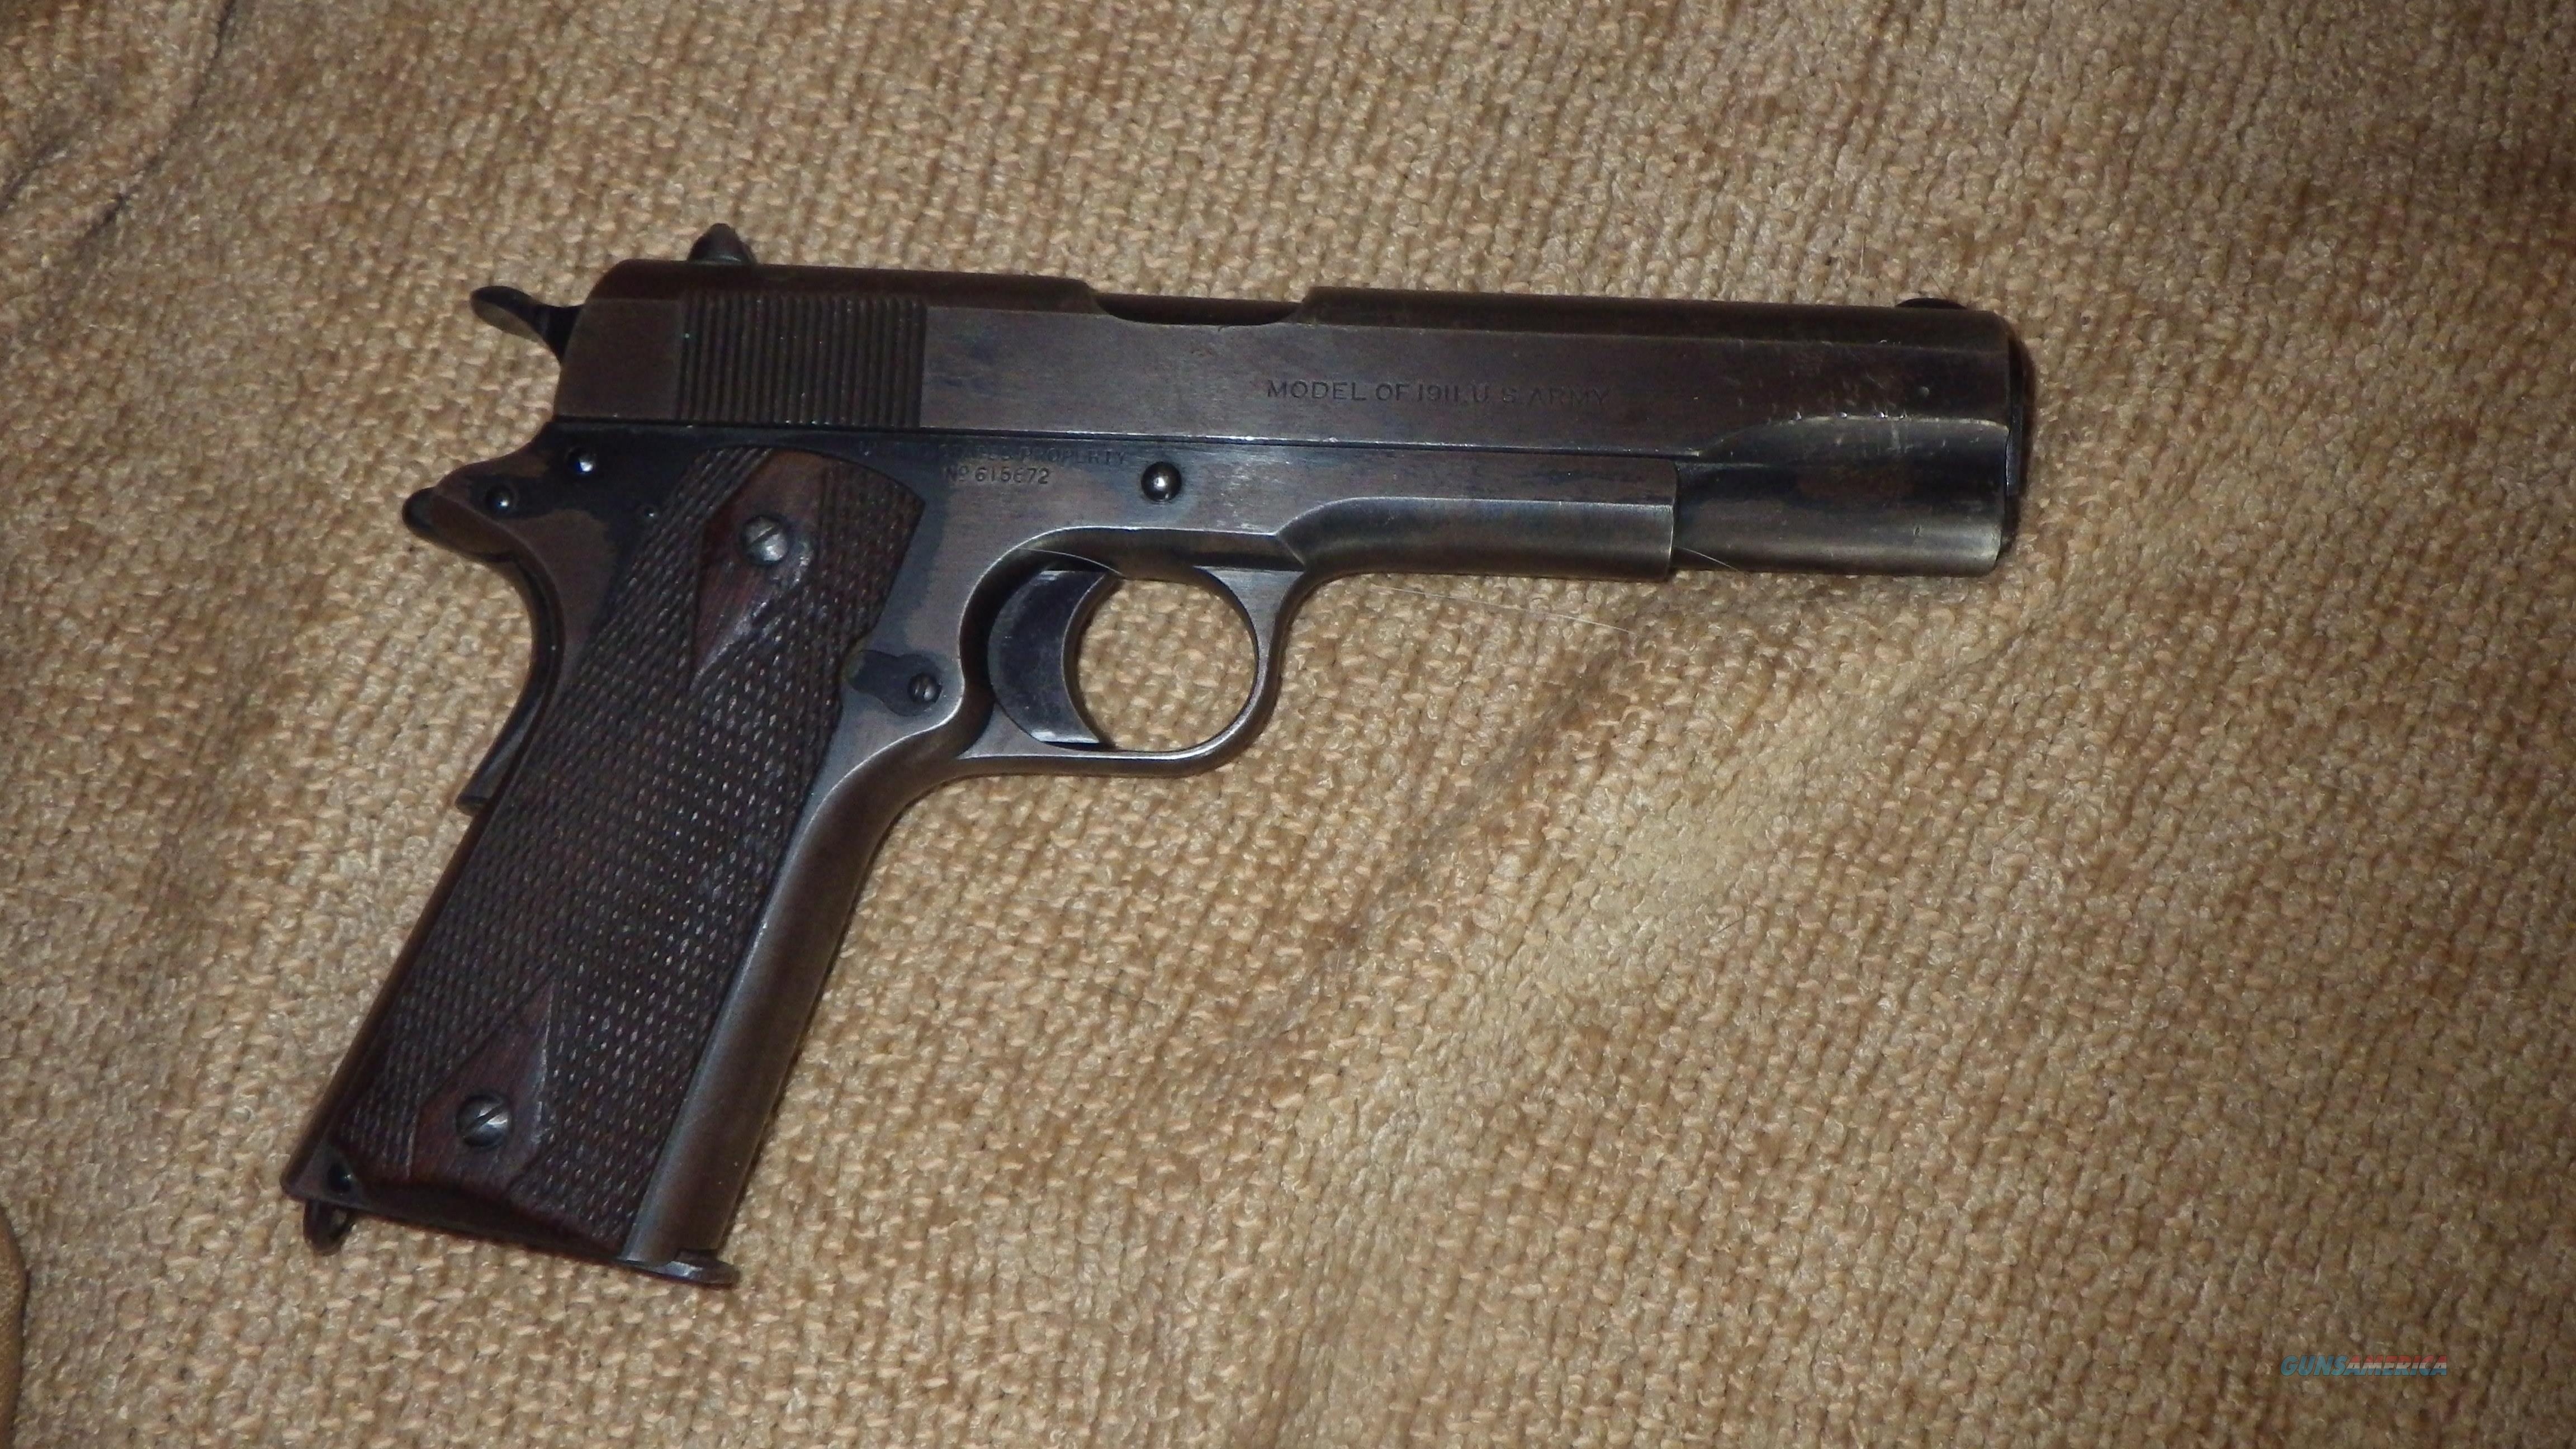 Colt Military WW1 1911 (1919 mfg.) Stamped United States Property / Model of 1911 U.S. Army -  Guns > Pistols > Colt Automatic Pistols (1911 & Var)